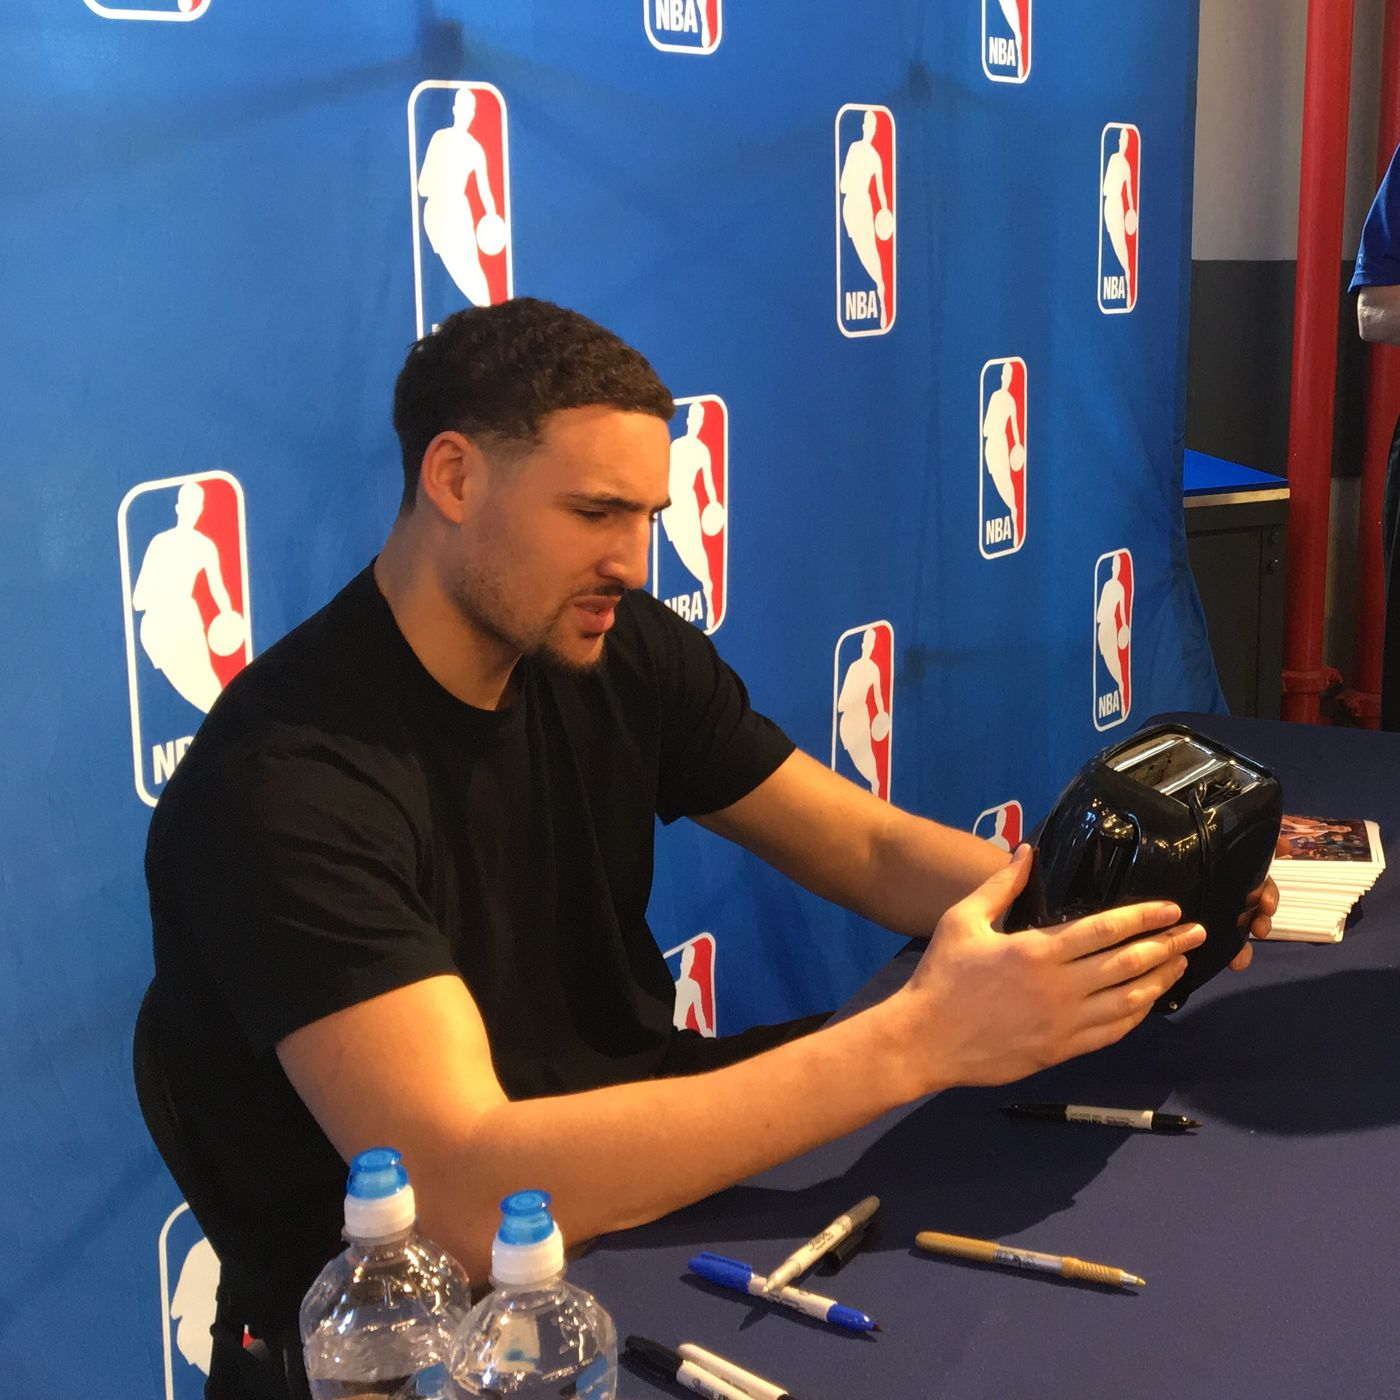 finest selection 18eb8 5f115 Klay Thompson was so confused when someone asked him to sign ...